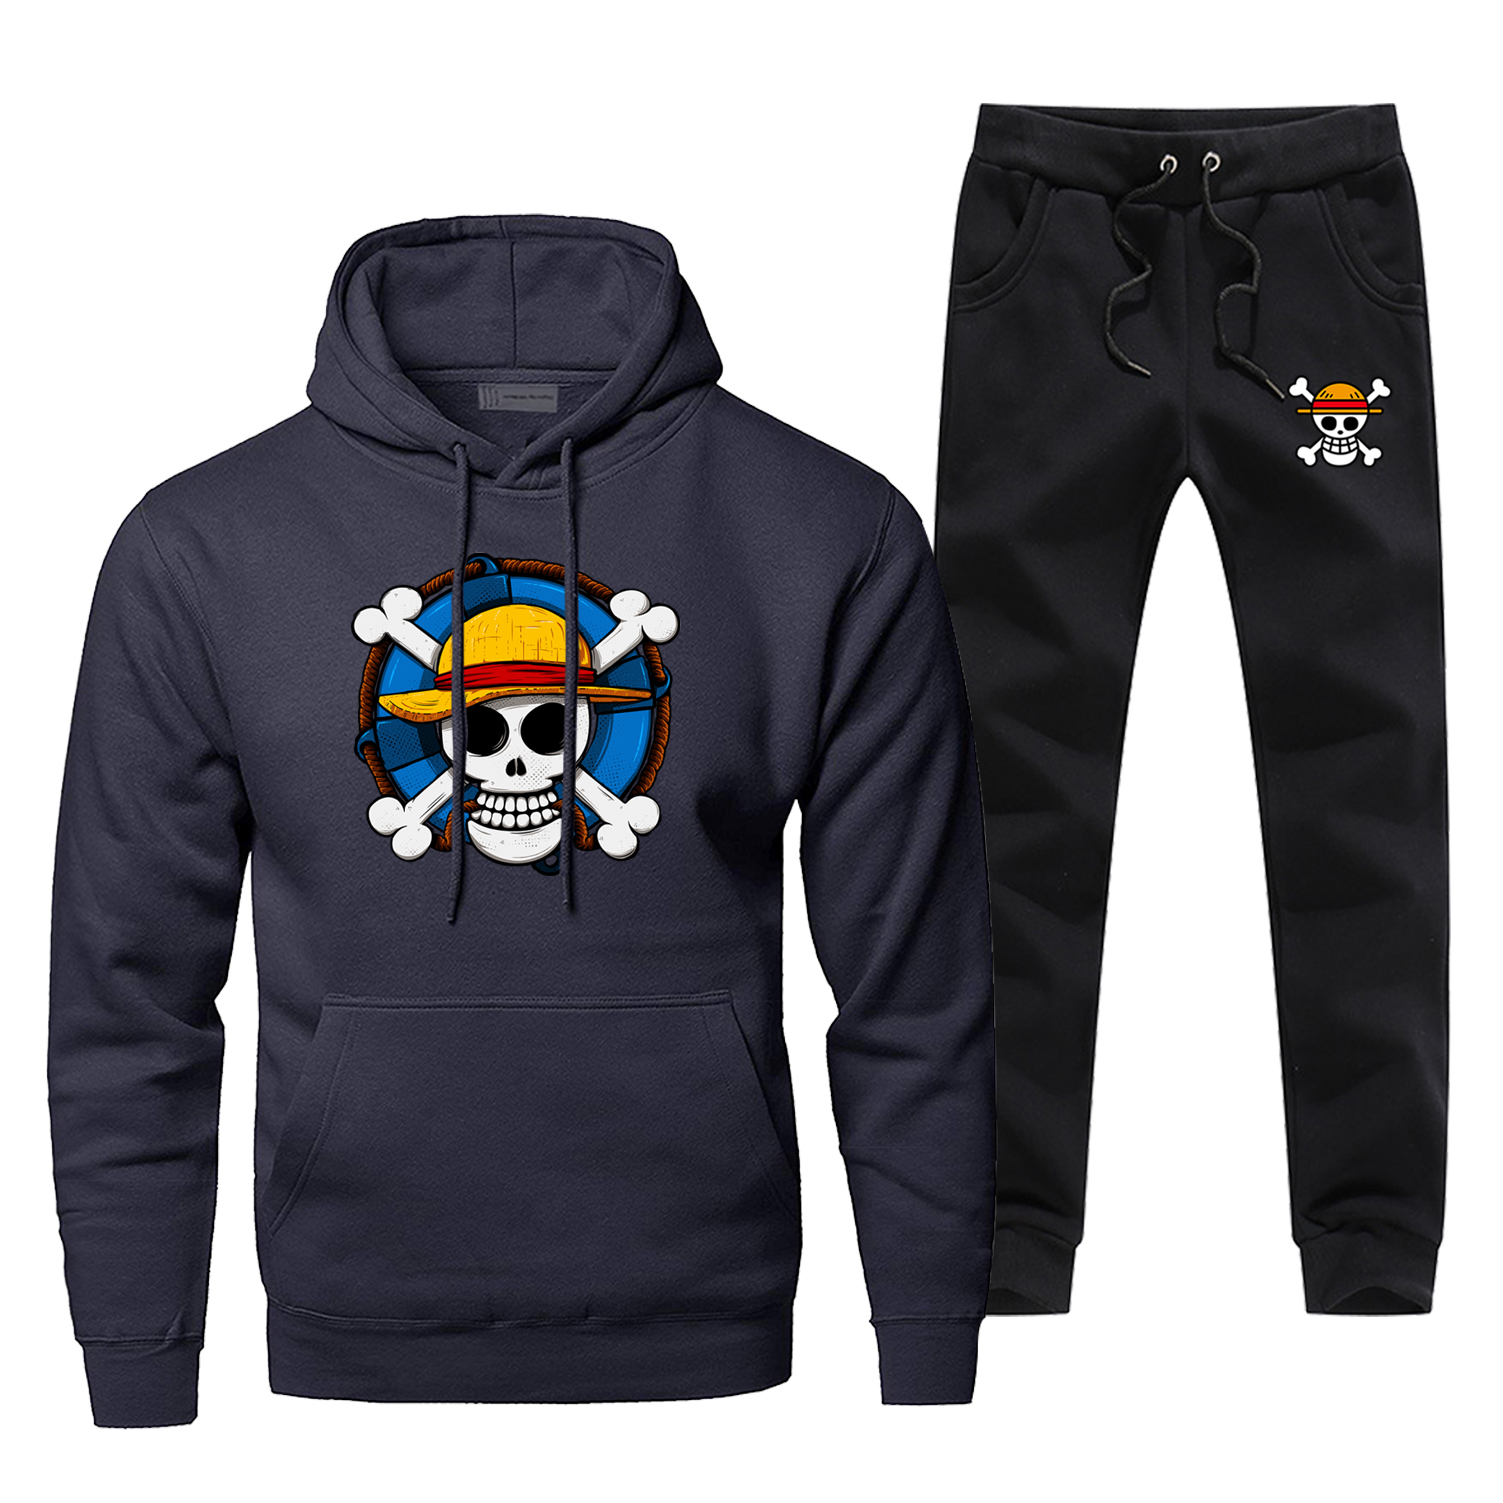 One Piece Monkey D Luffy Print Men's Jogging Japan Anime Men's Full Suit Tracksuit Harajuku Fashion Sweatpants Winter Streetwear